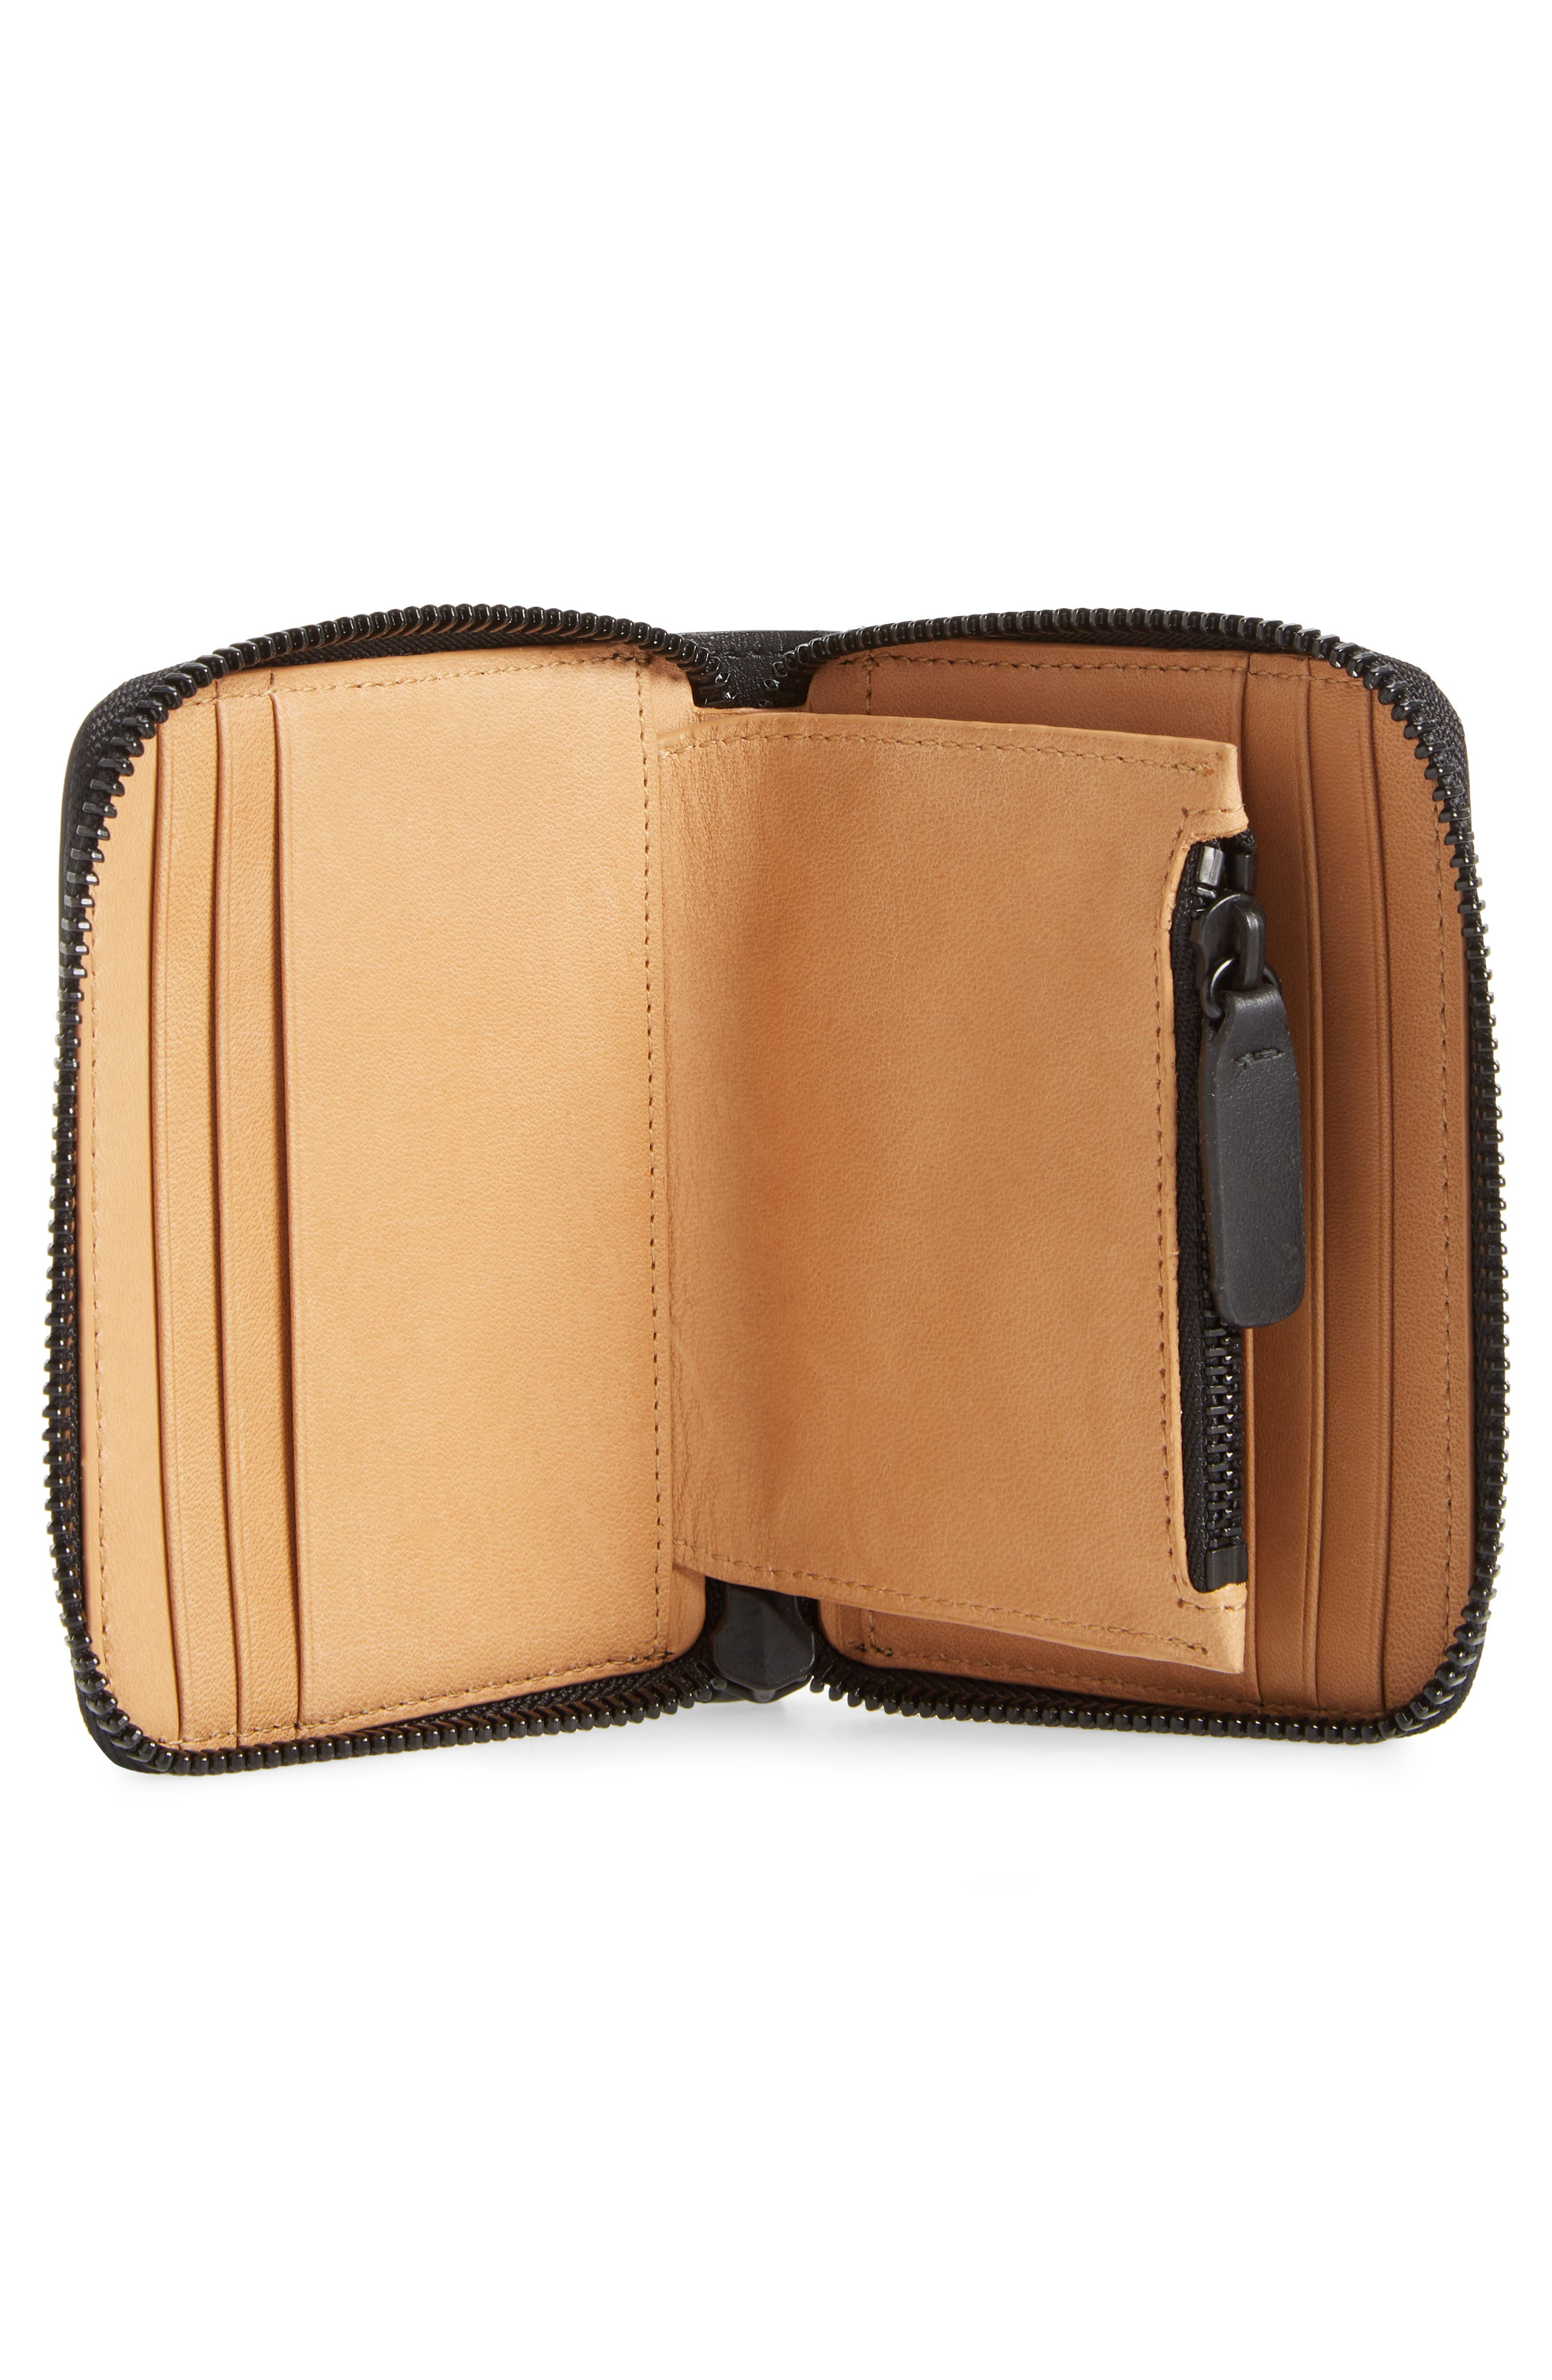 COMMON PROJECTS, Leather Coin Case, Alternate thumbnail 2, color, 001